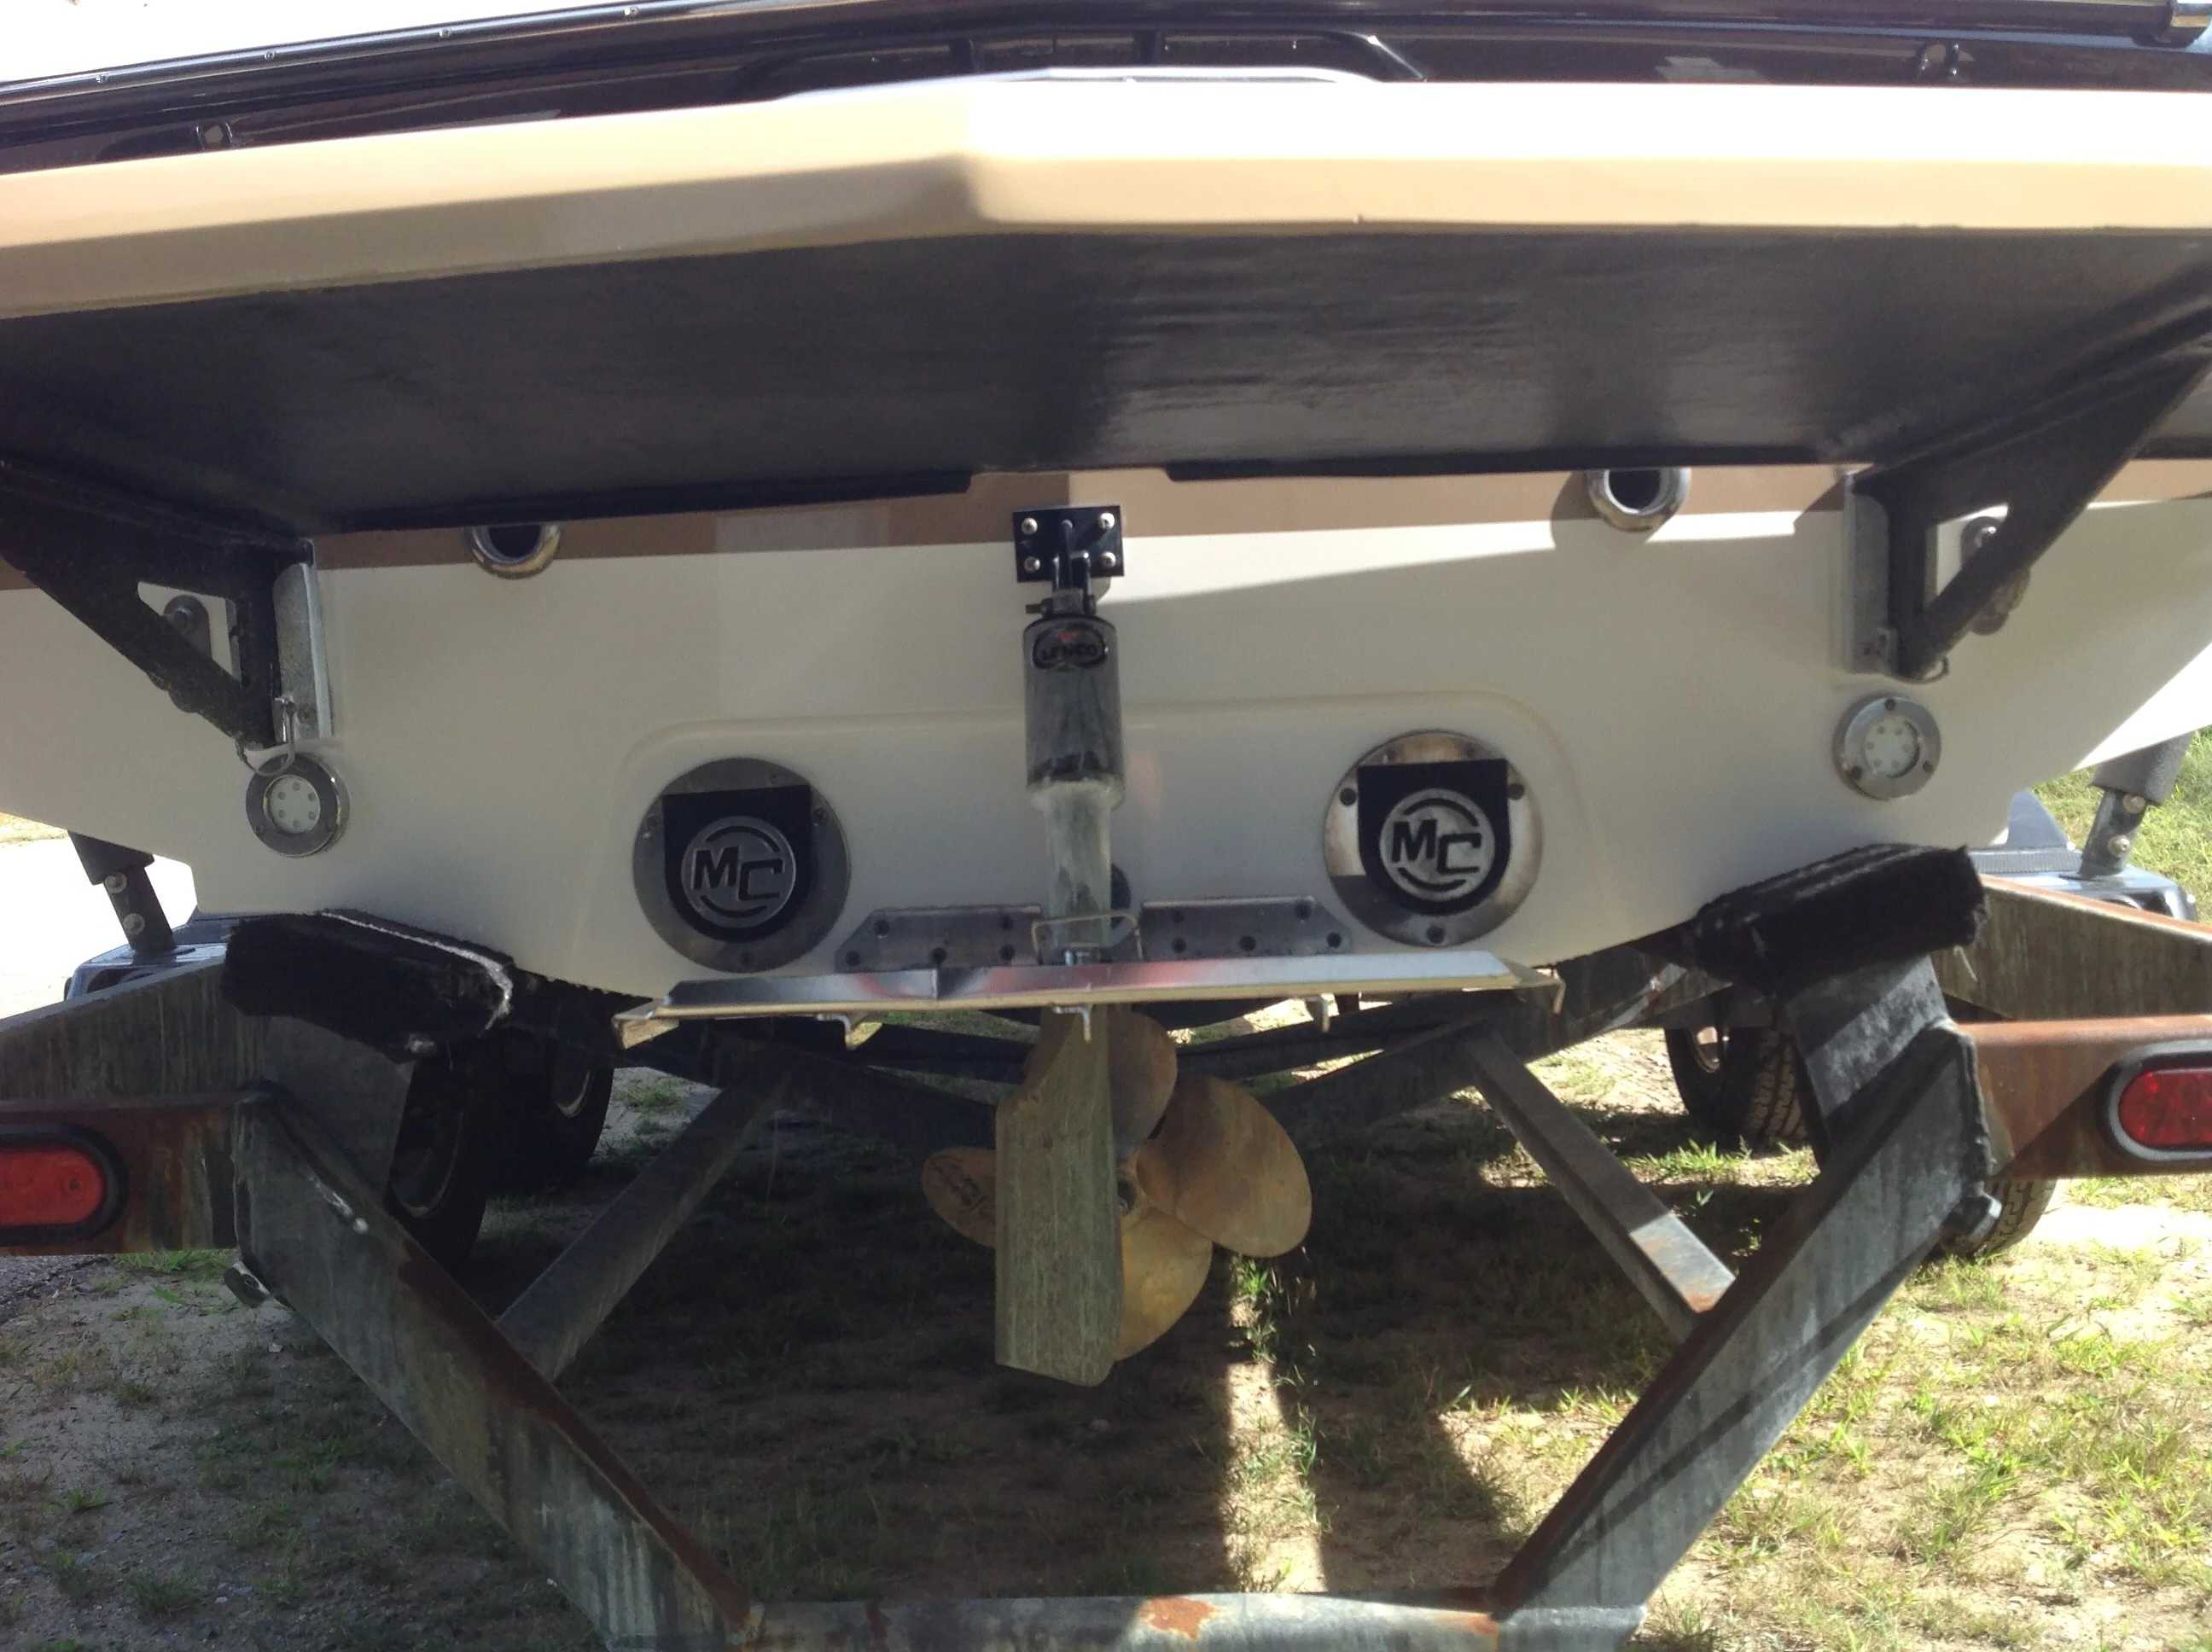 2010 Mastercraft boat for sale, model of the boat is Maristar 235 & Image # 16 of 16